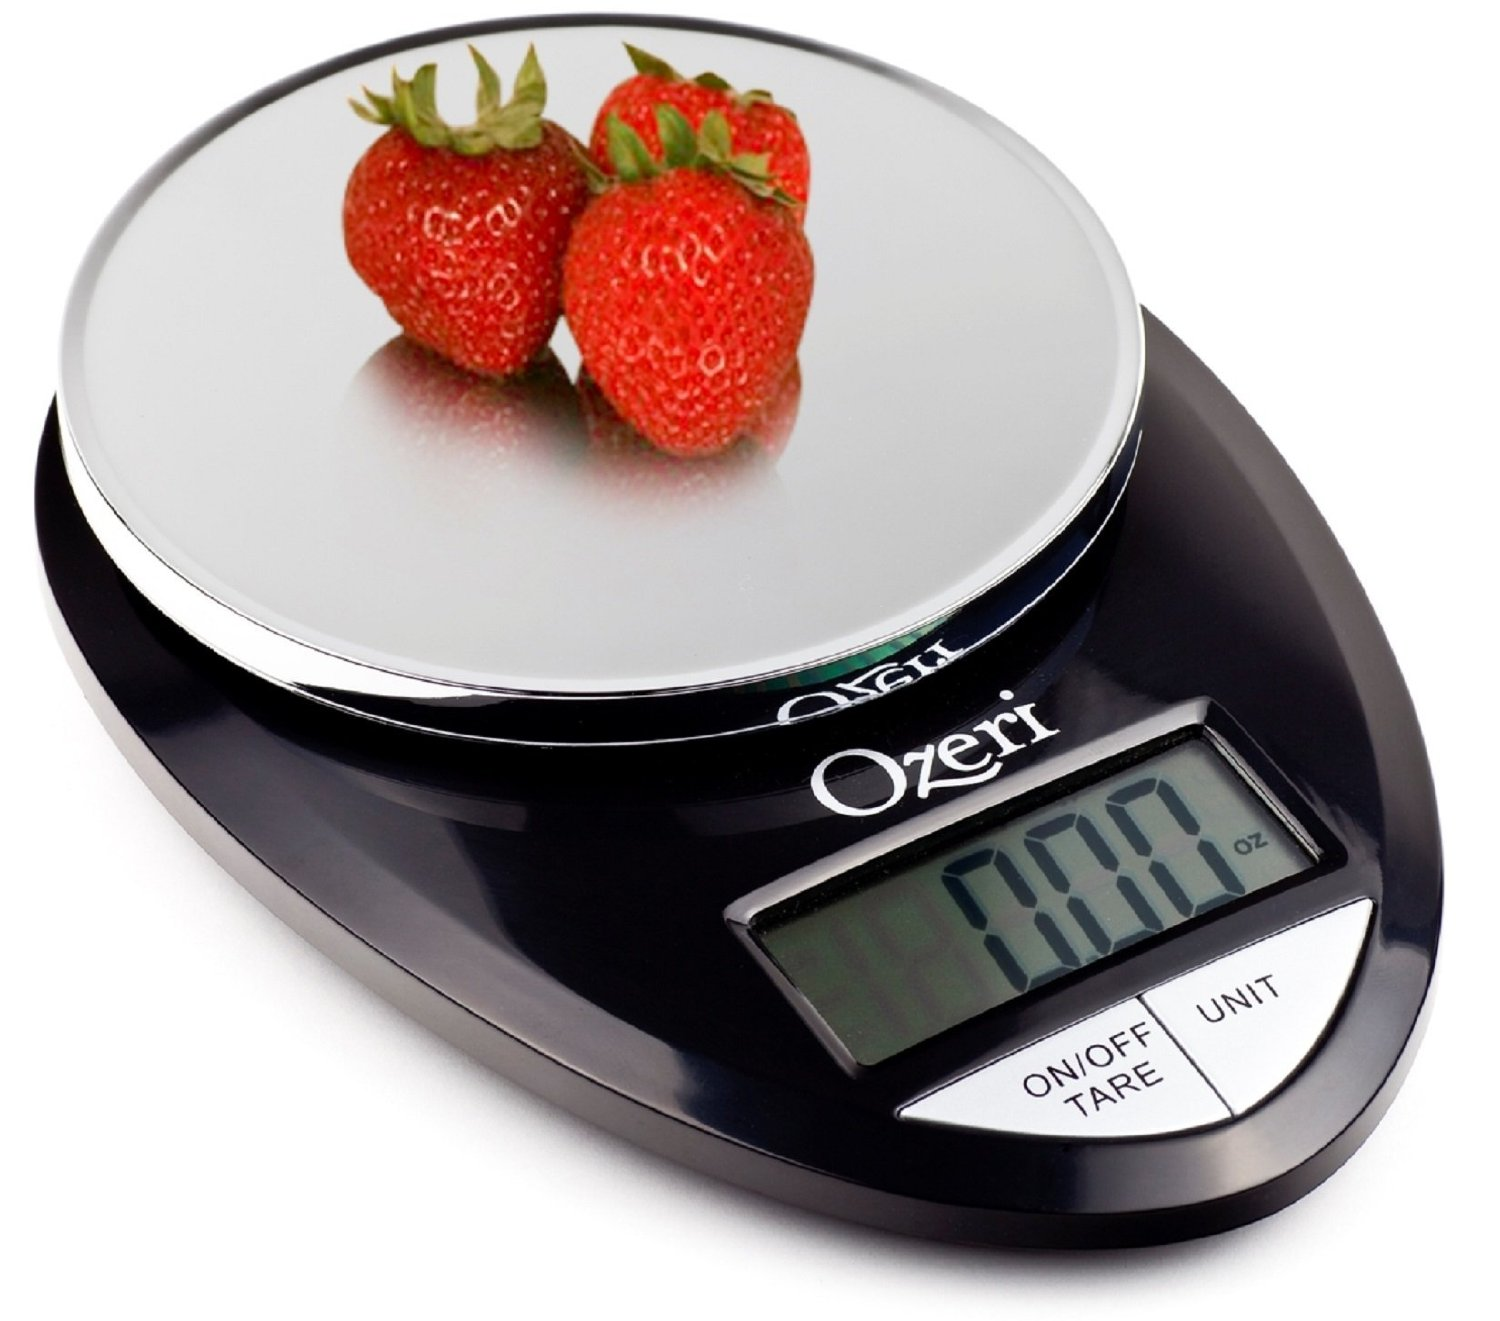 Top 10 Best Kitchen Food Scales In 2018 Reviews